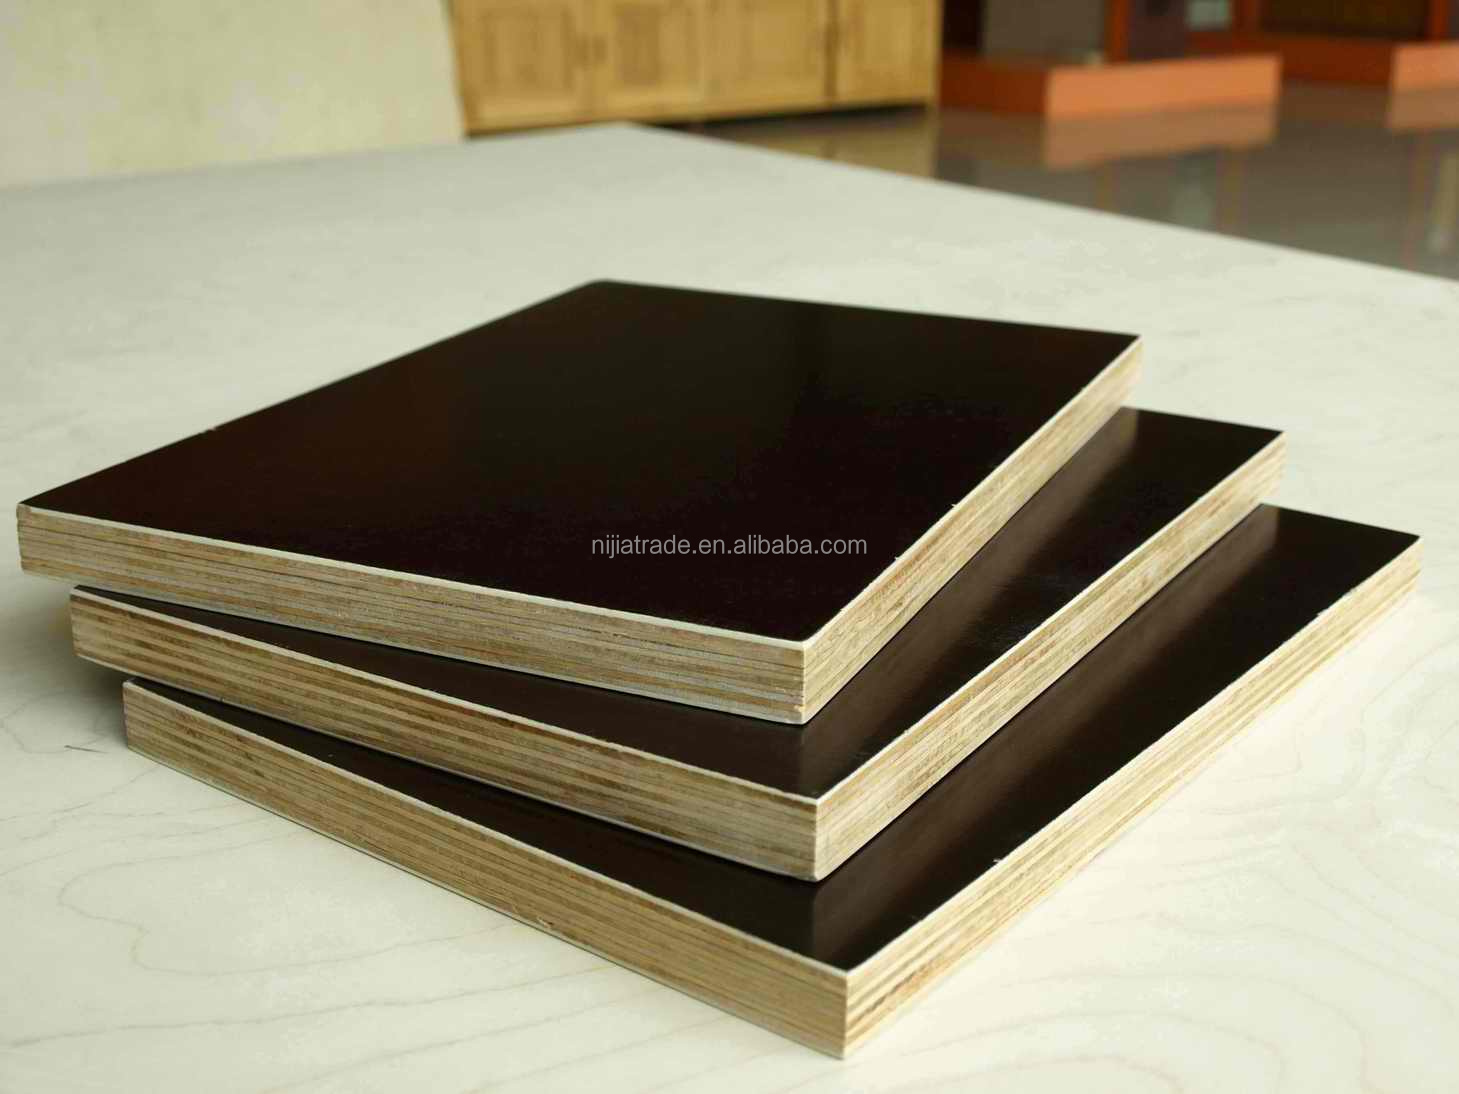 Special Prices 12mm 18mm WBP waterproof construction marine plywood save cost